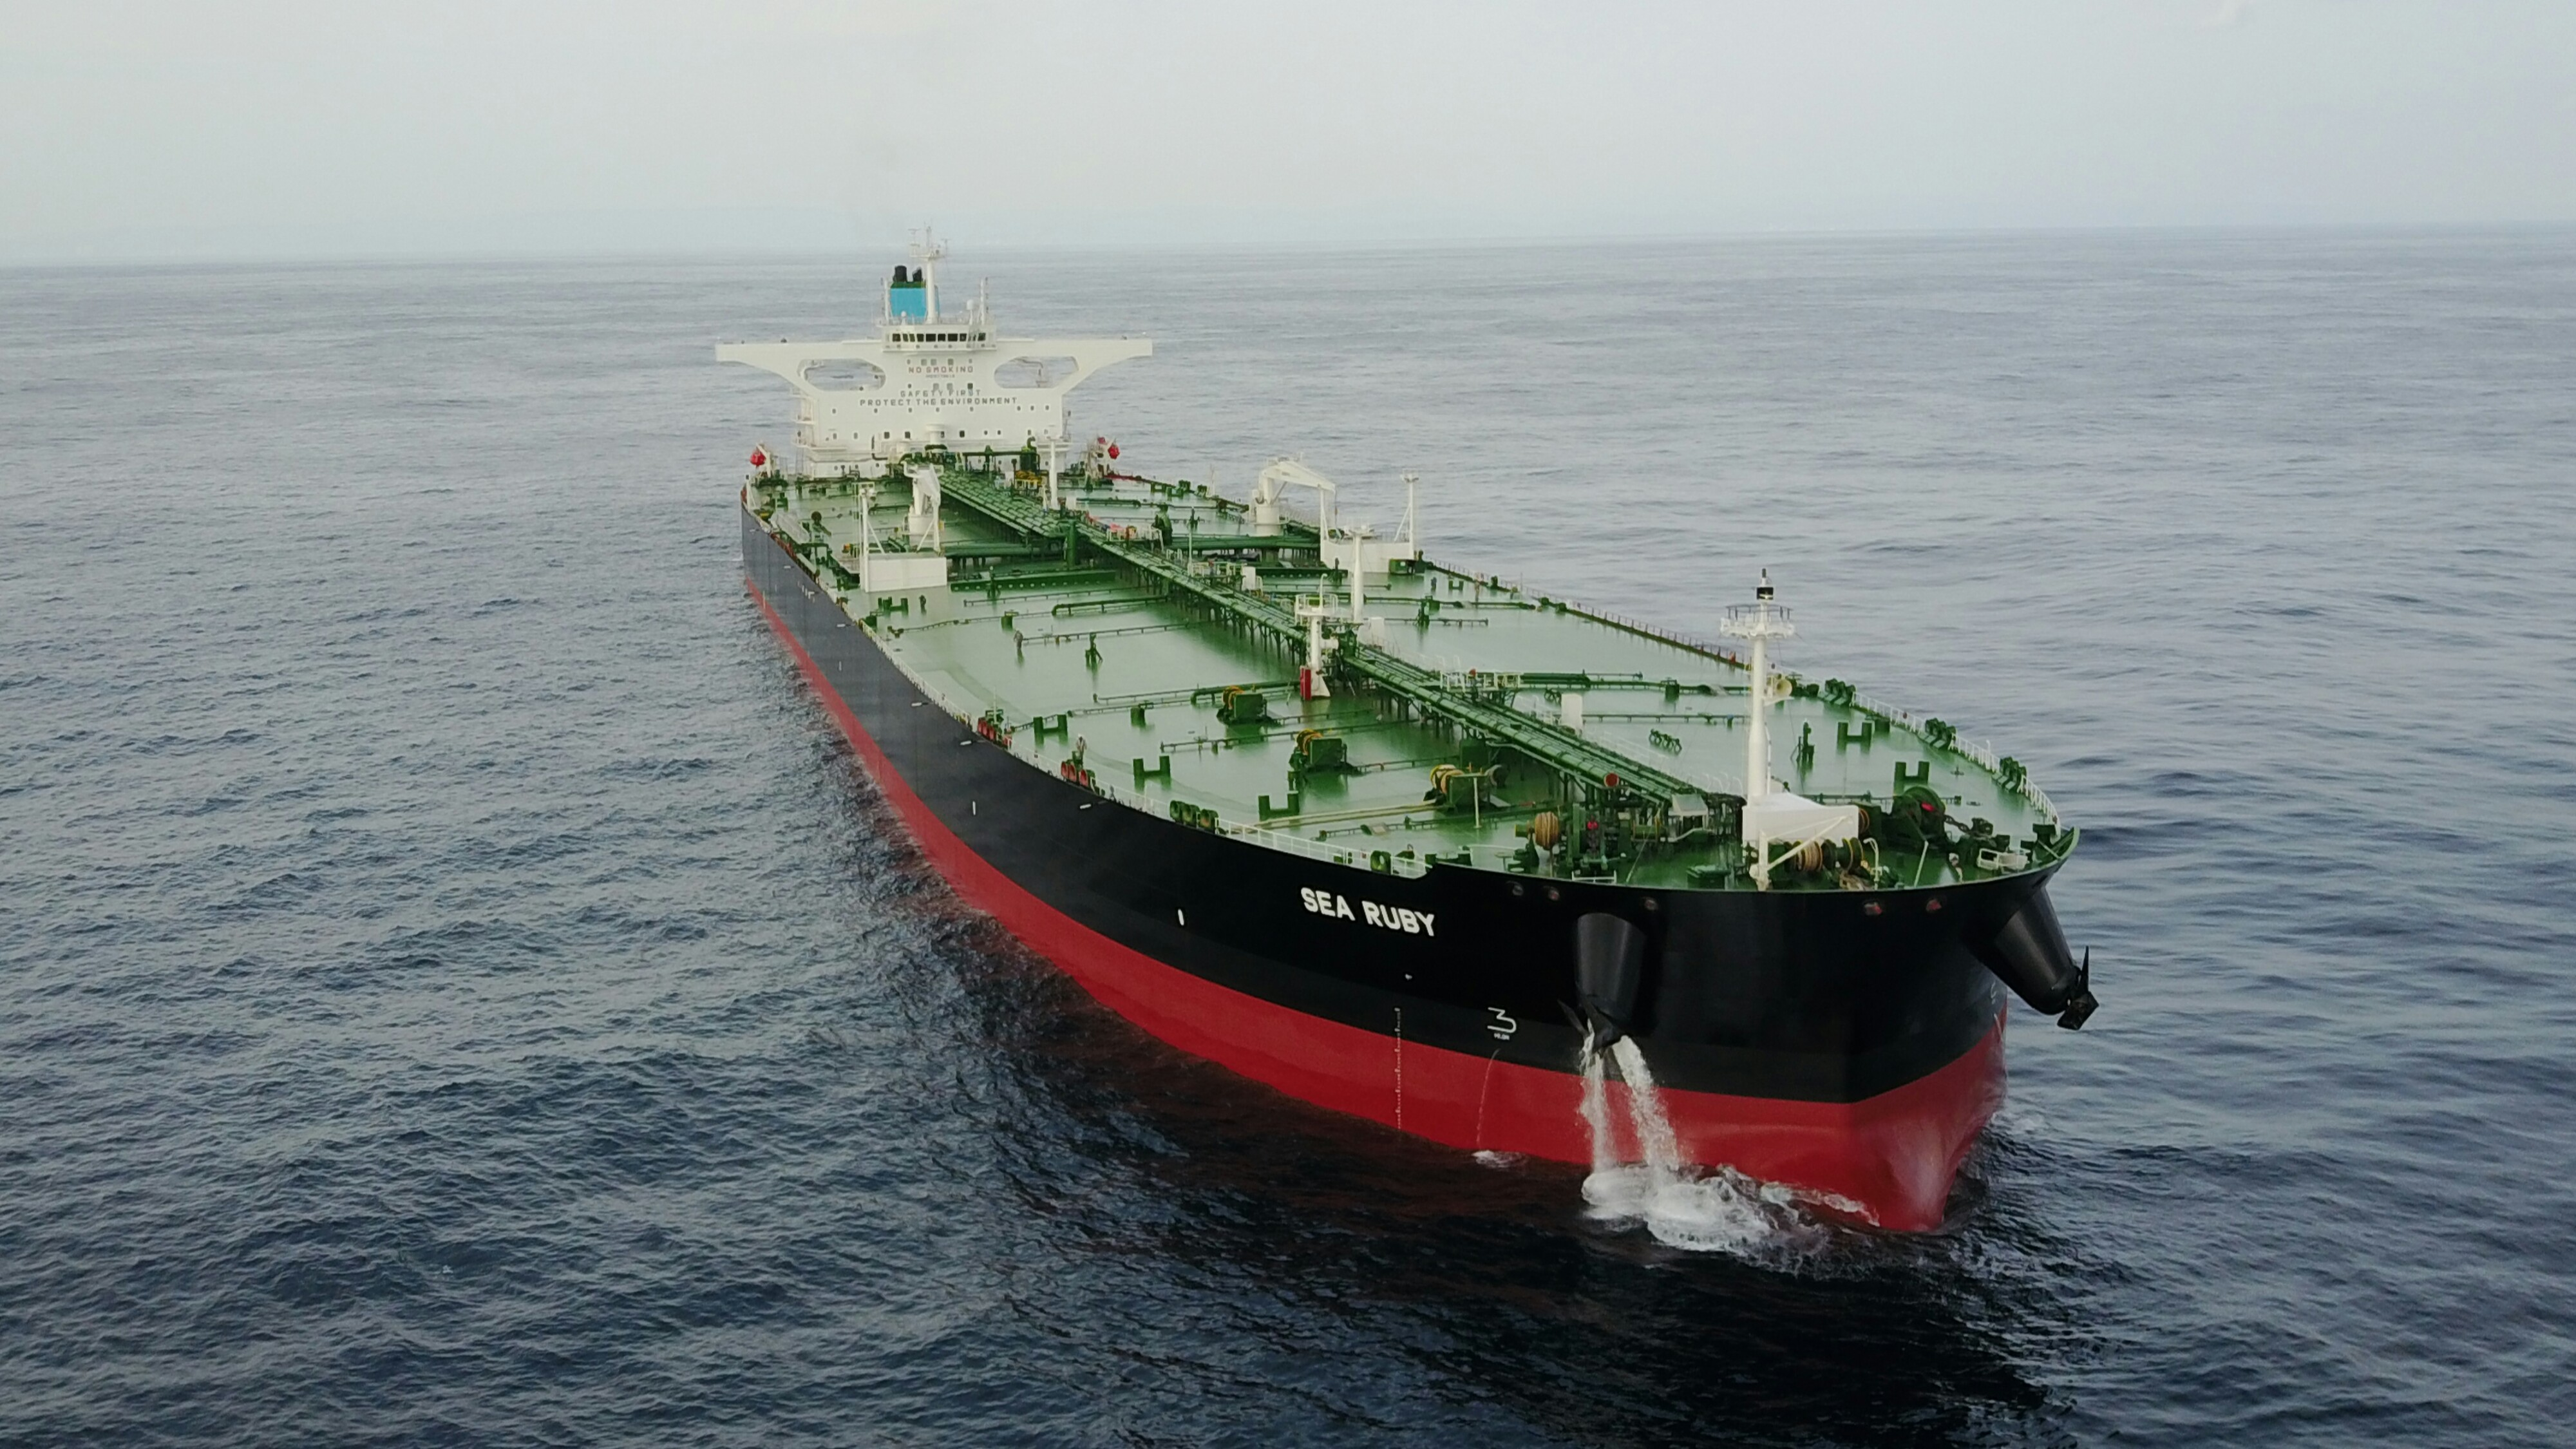 Sea Ruby Delivery Pantheon Tankers Management